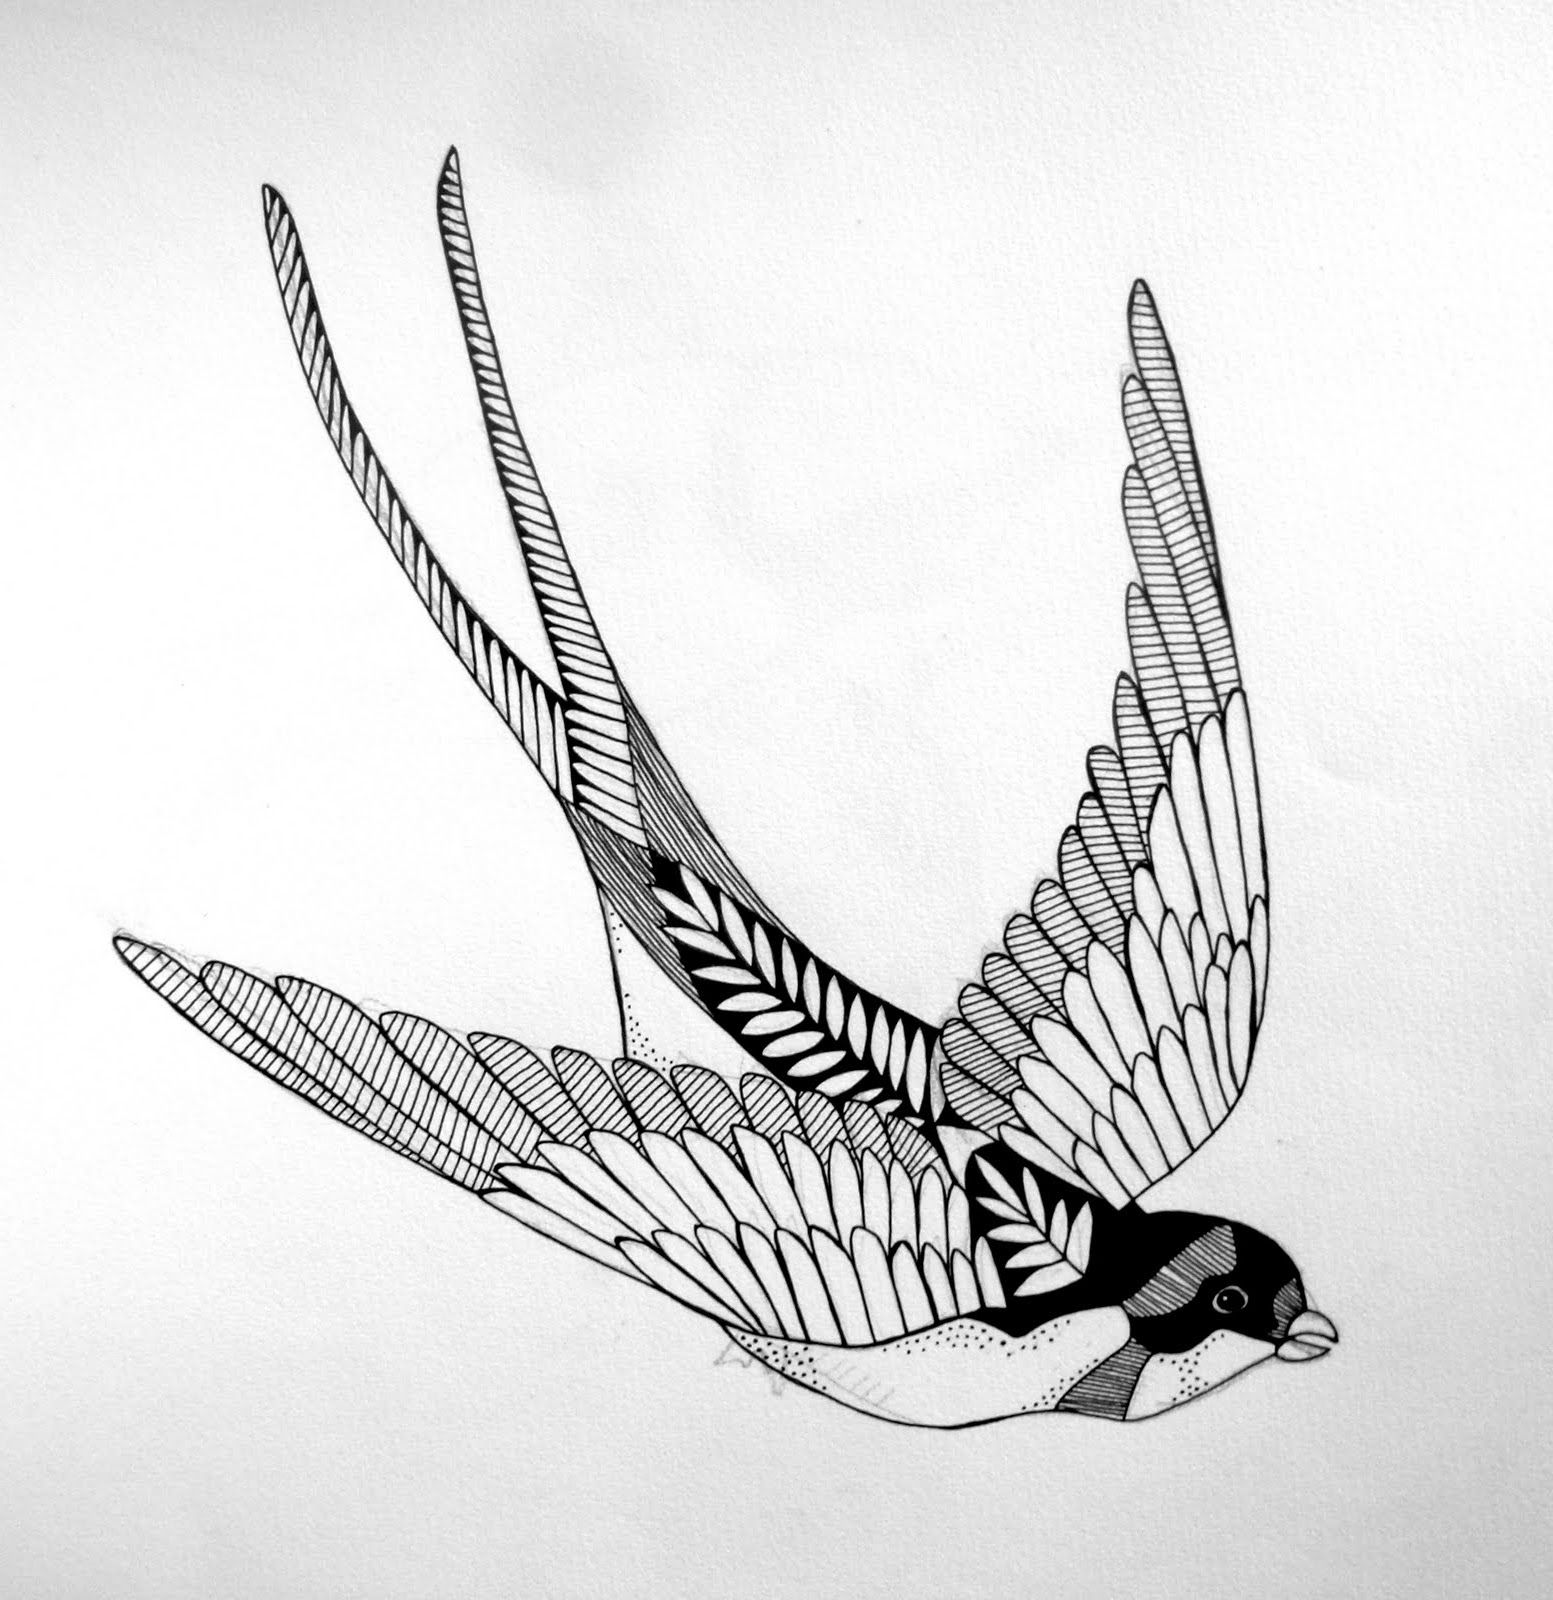 Schwalbe | Swallow tattoo, Swallow tattoo design, Barn ...